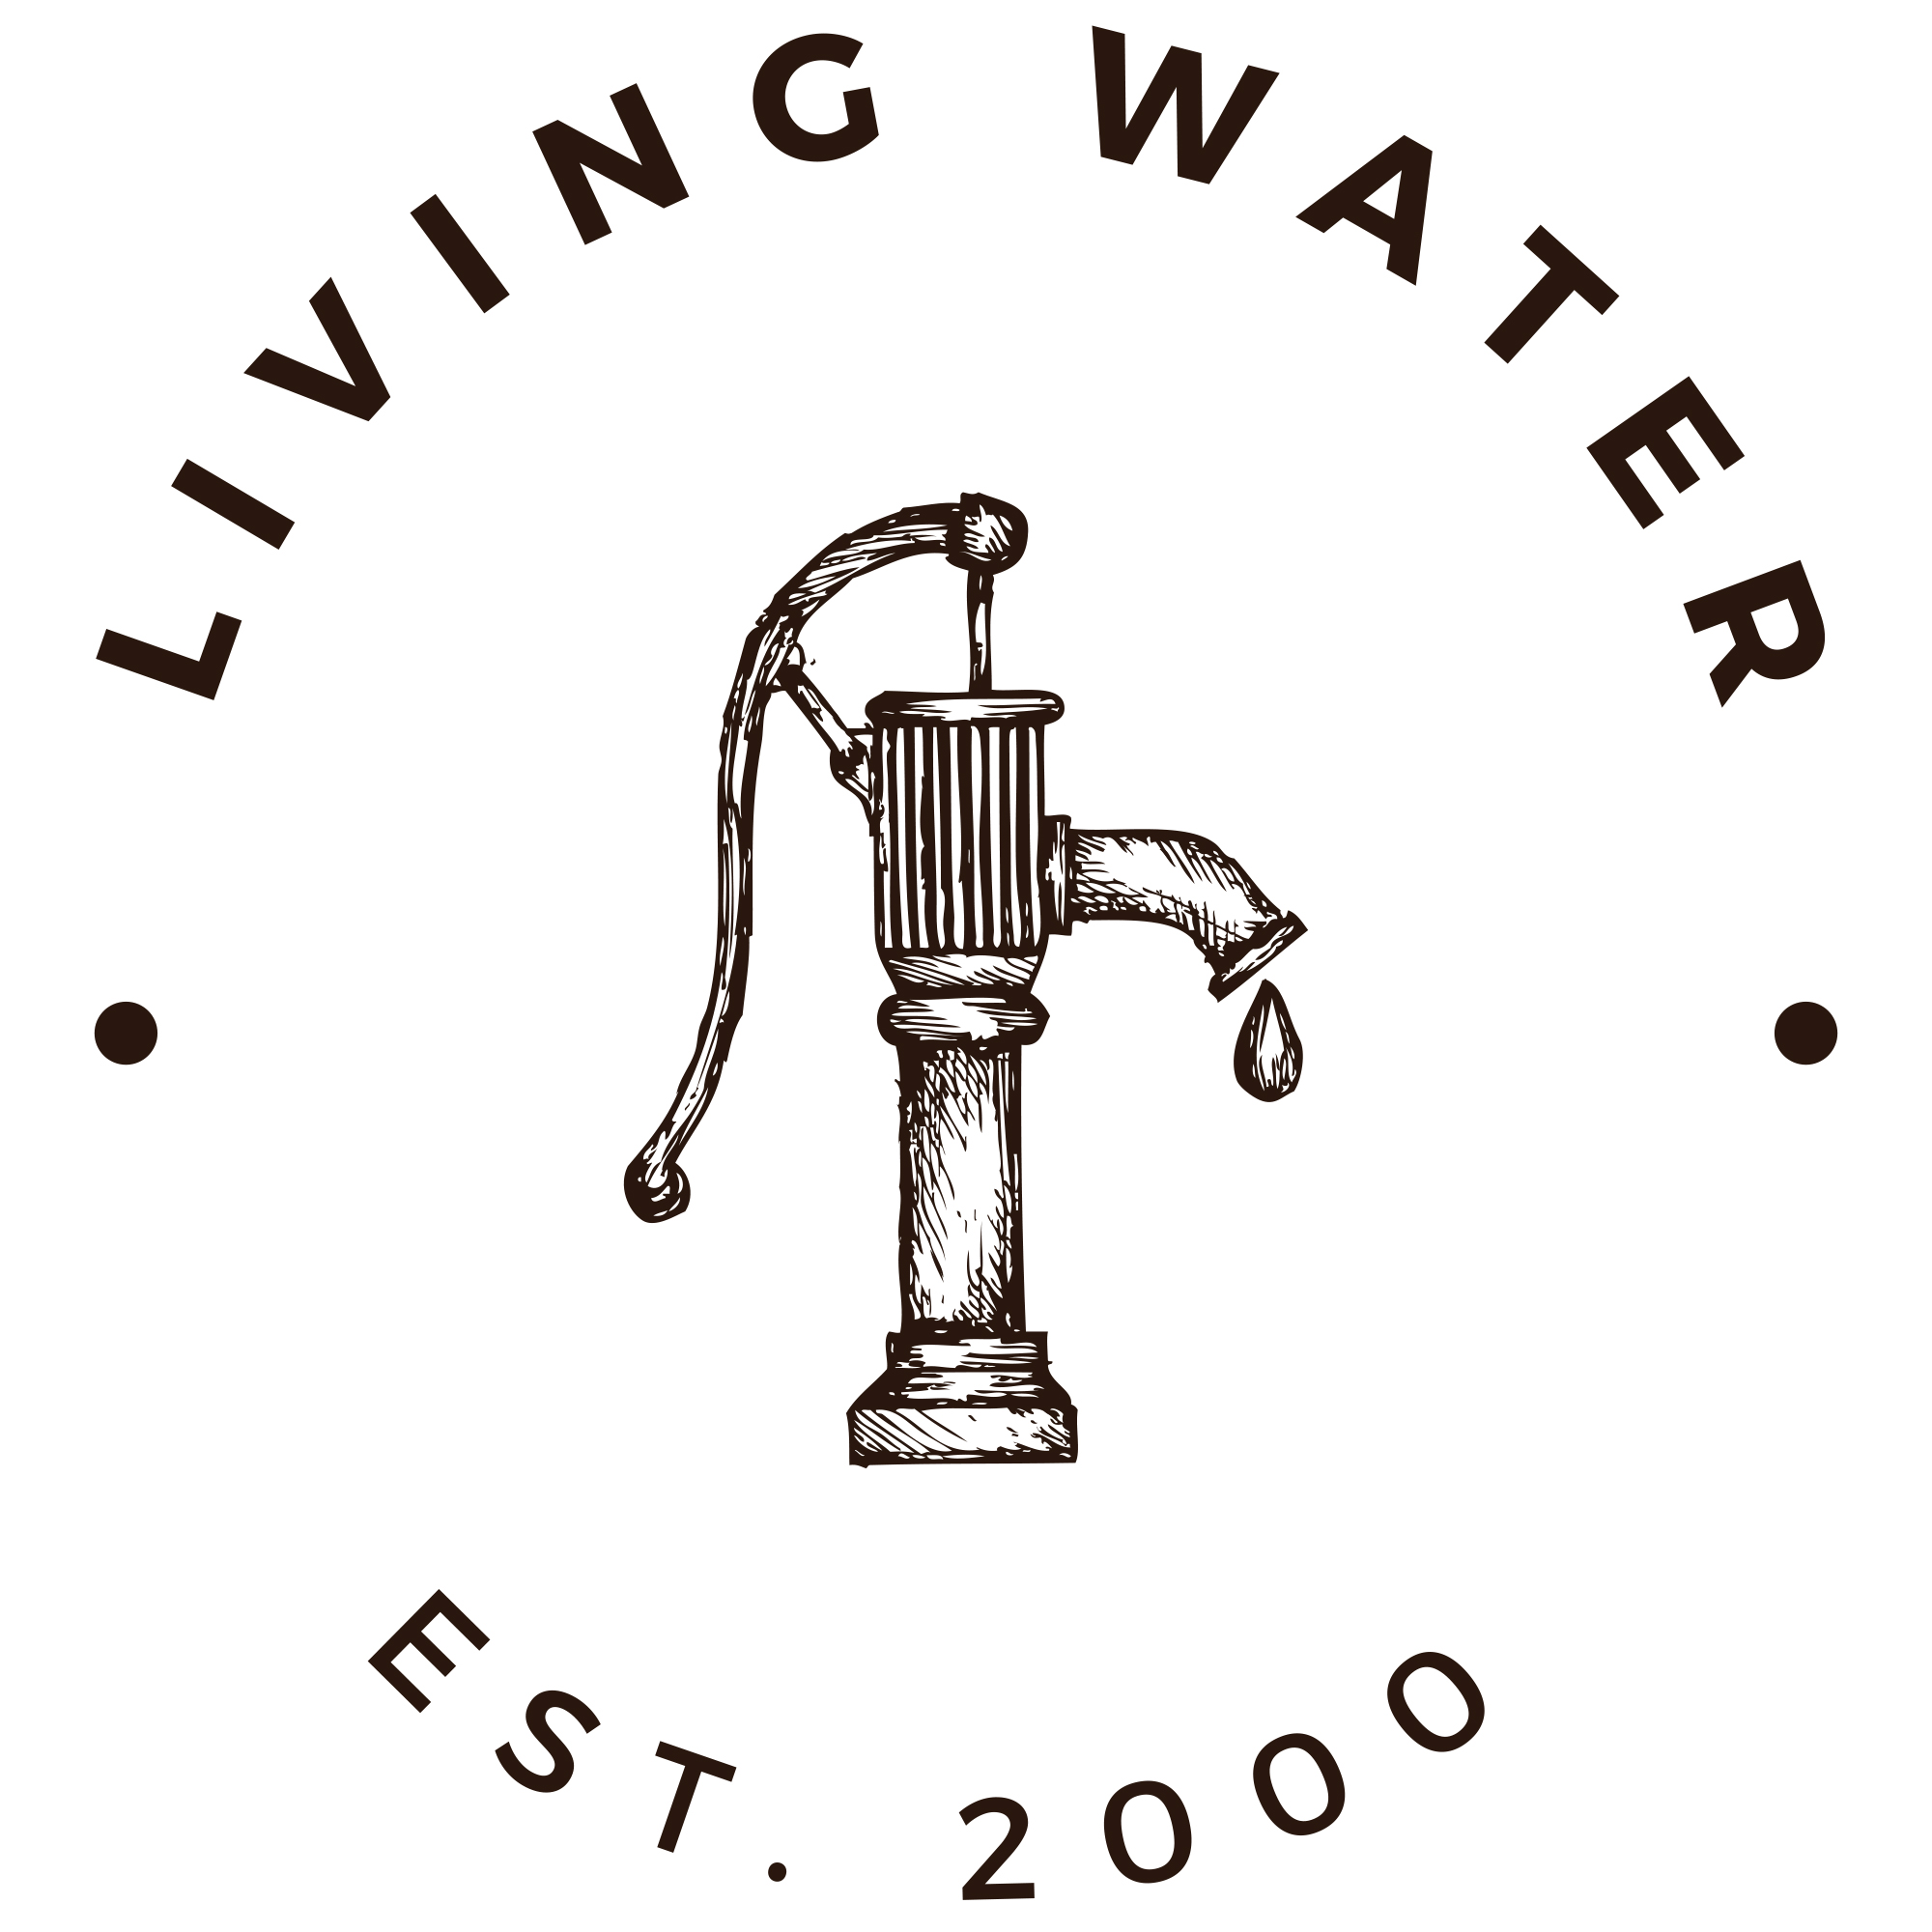 Sermons from Living Water Dayton